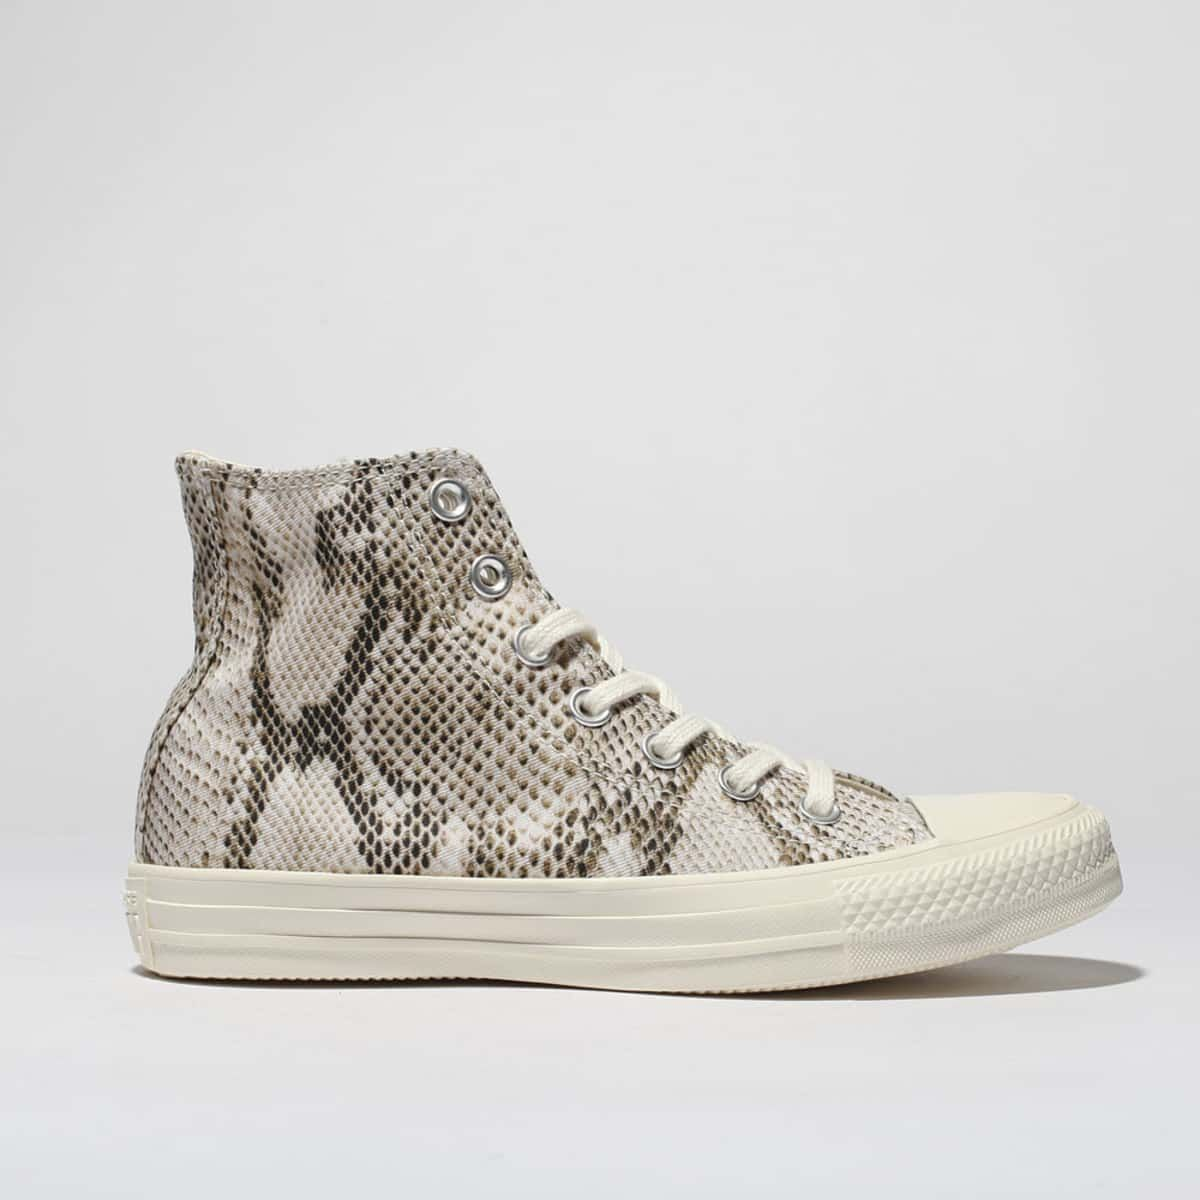 423261a4d84c0 womens natural converse all star snake hi trainers